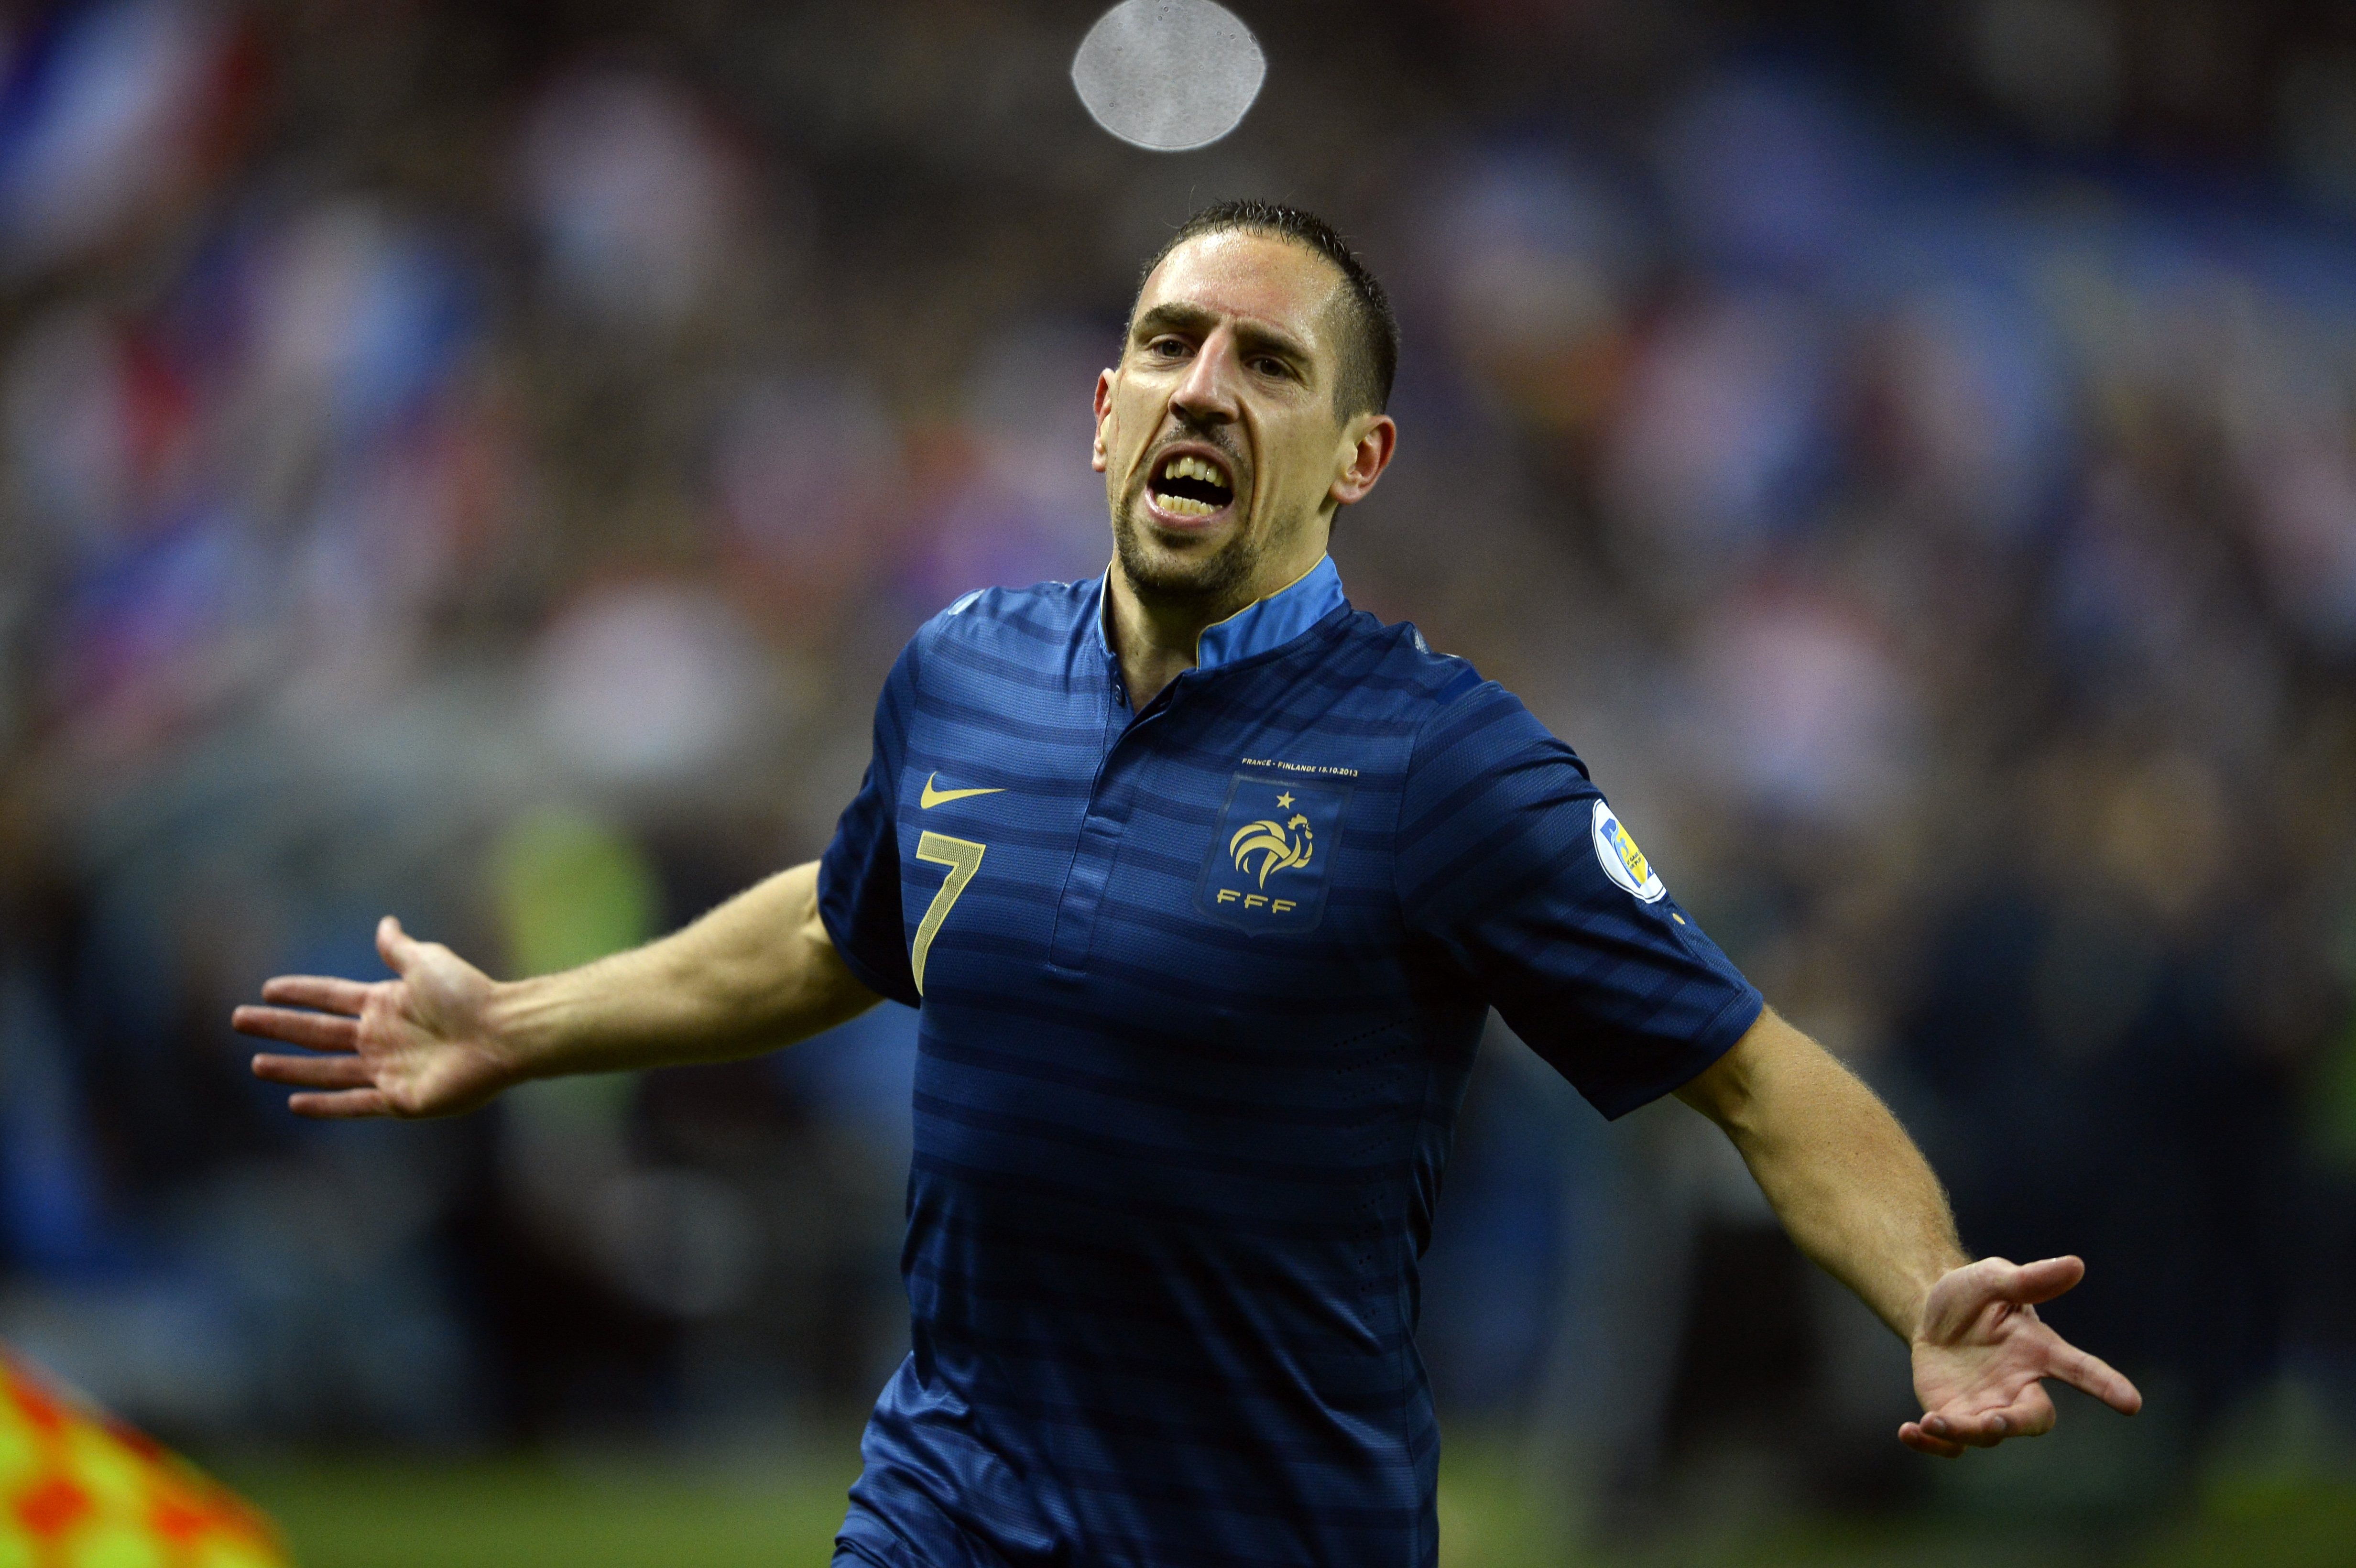 France's midfielder Franck Ribery celebrates after scoring a goal during the 2014 FIFA World Cup qualifying group I football match between France and Finland at the Stade de France in Saint-Denis, north of Paris, on October 15, 2013. AFP PHOTO / LIONEL BONAVENTURE